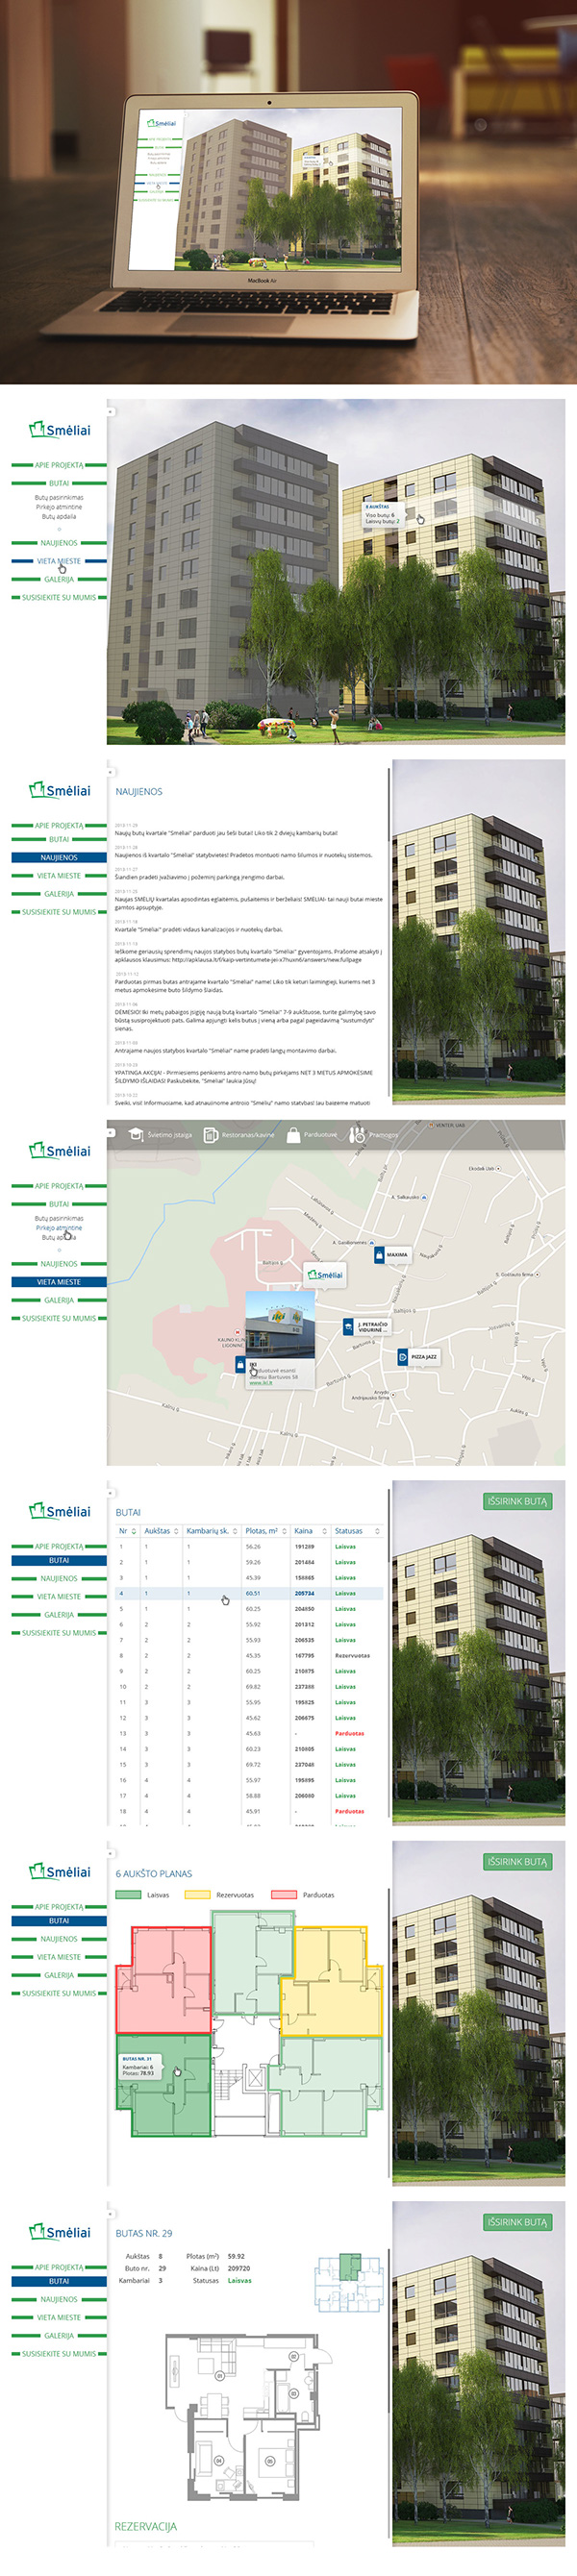 real estate for sale UI ux